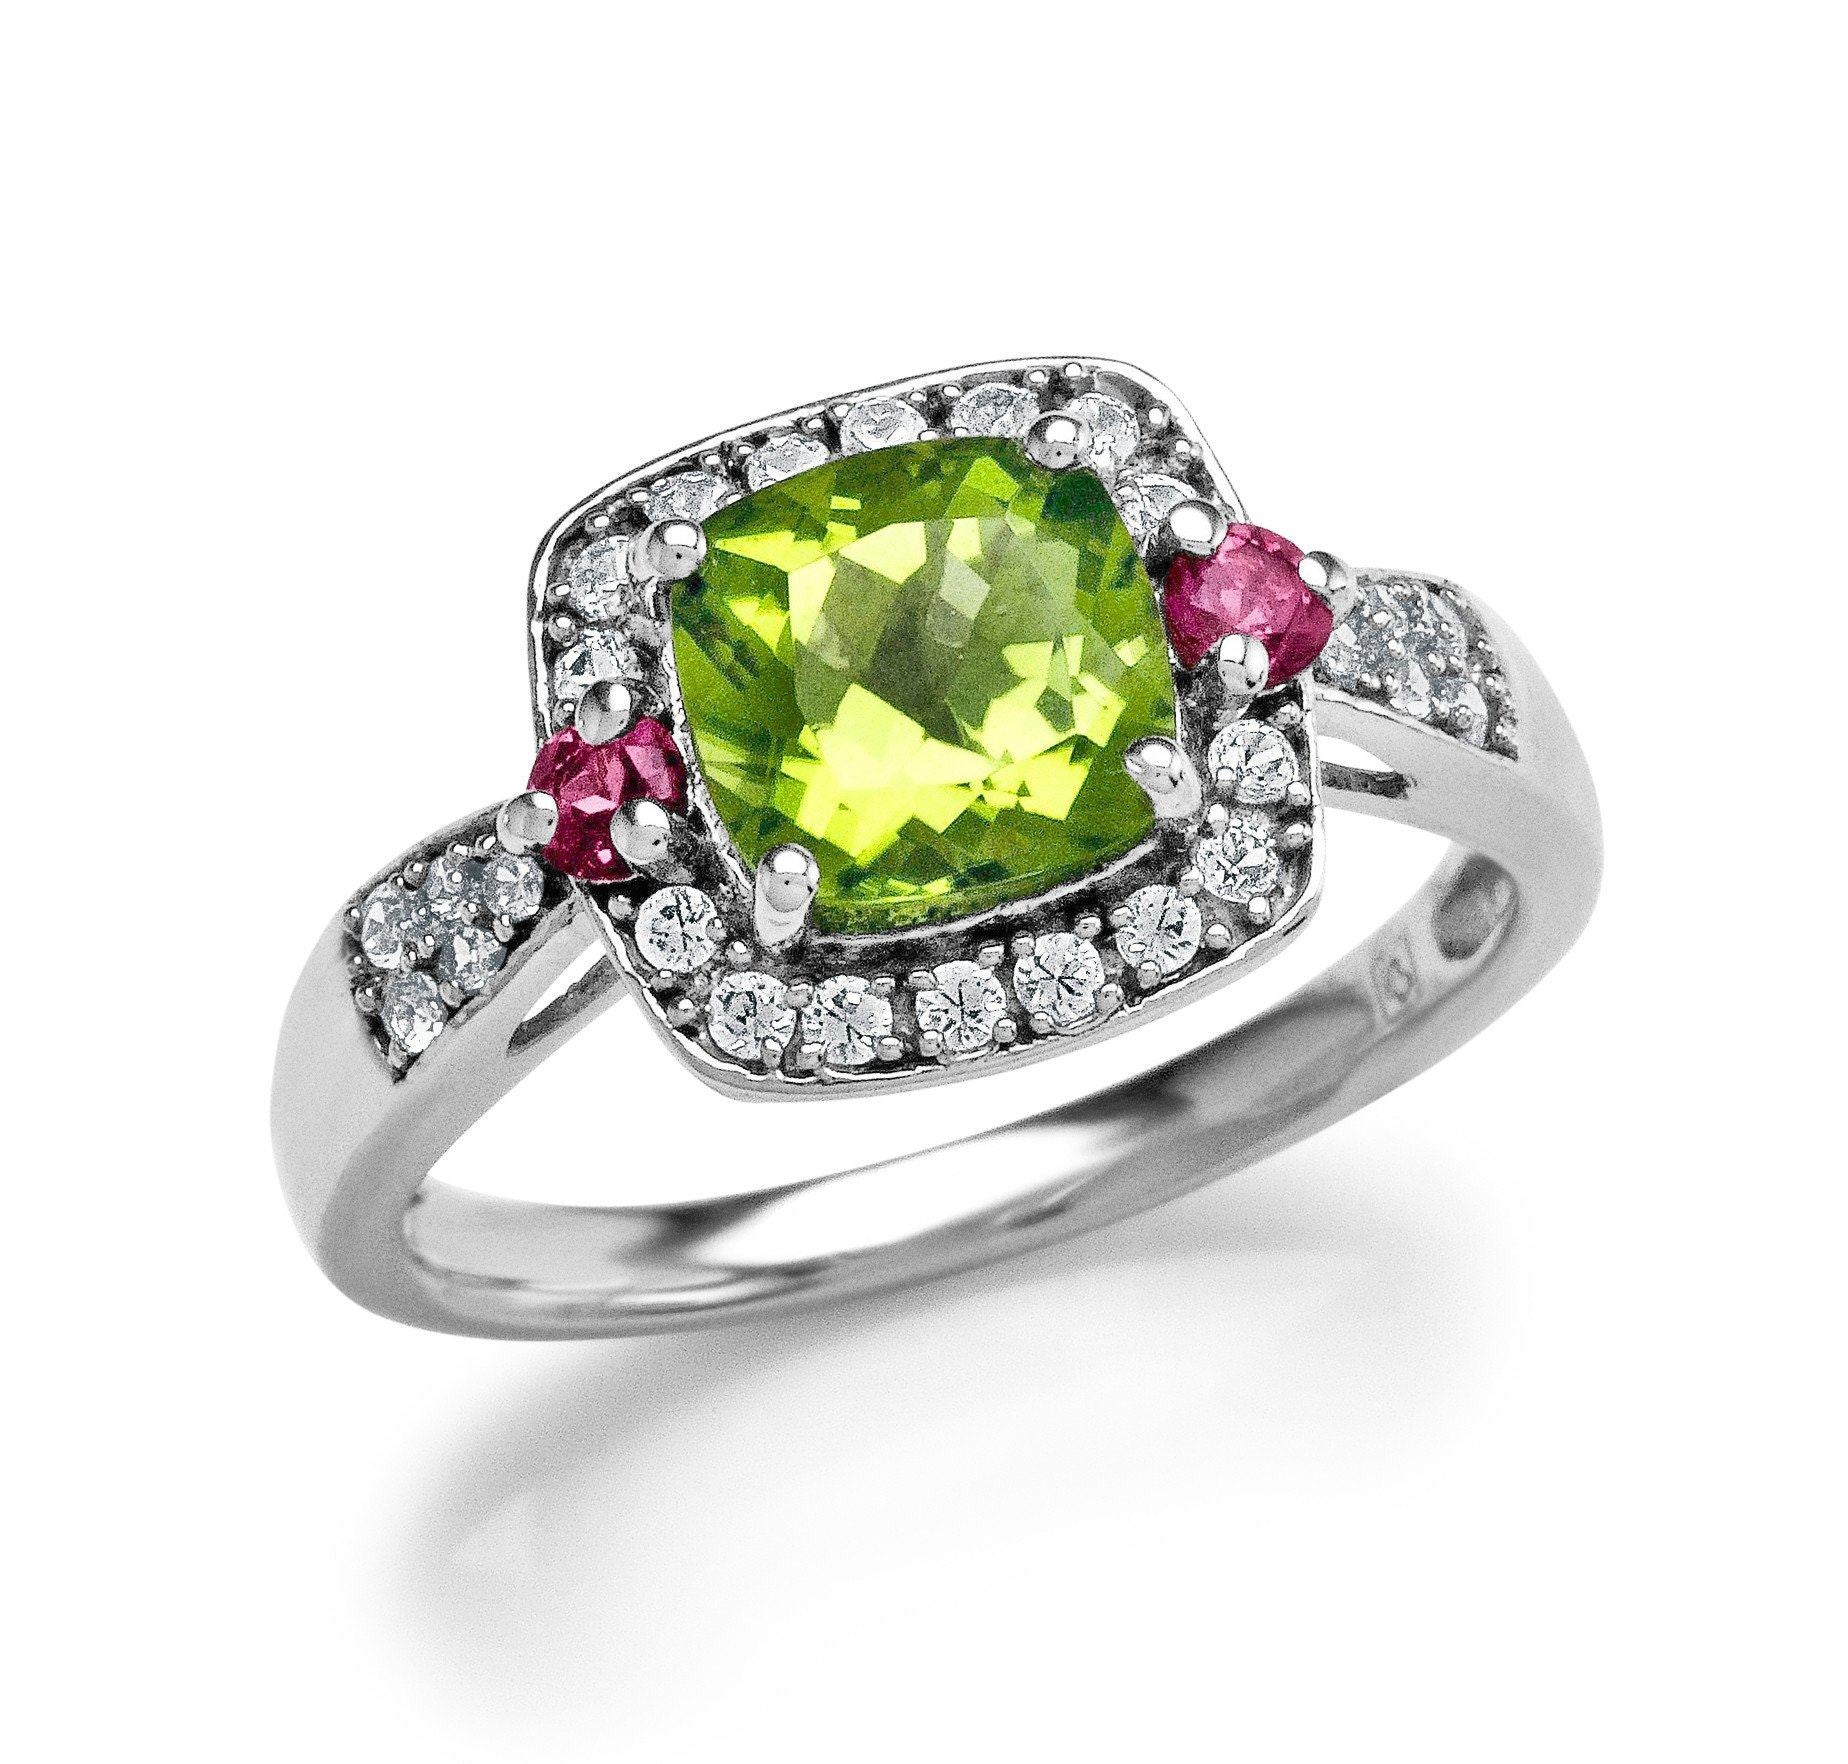 1.85 Carat Genuine Peridot & Pink Tourmaline & Created White Sapphire Ring in Sterling Silver